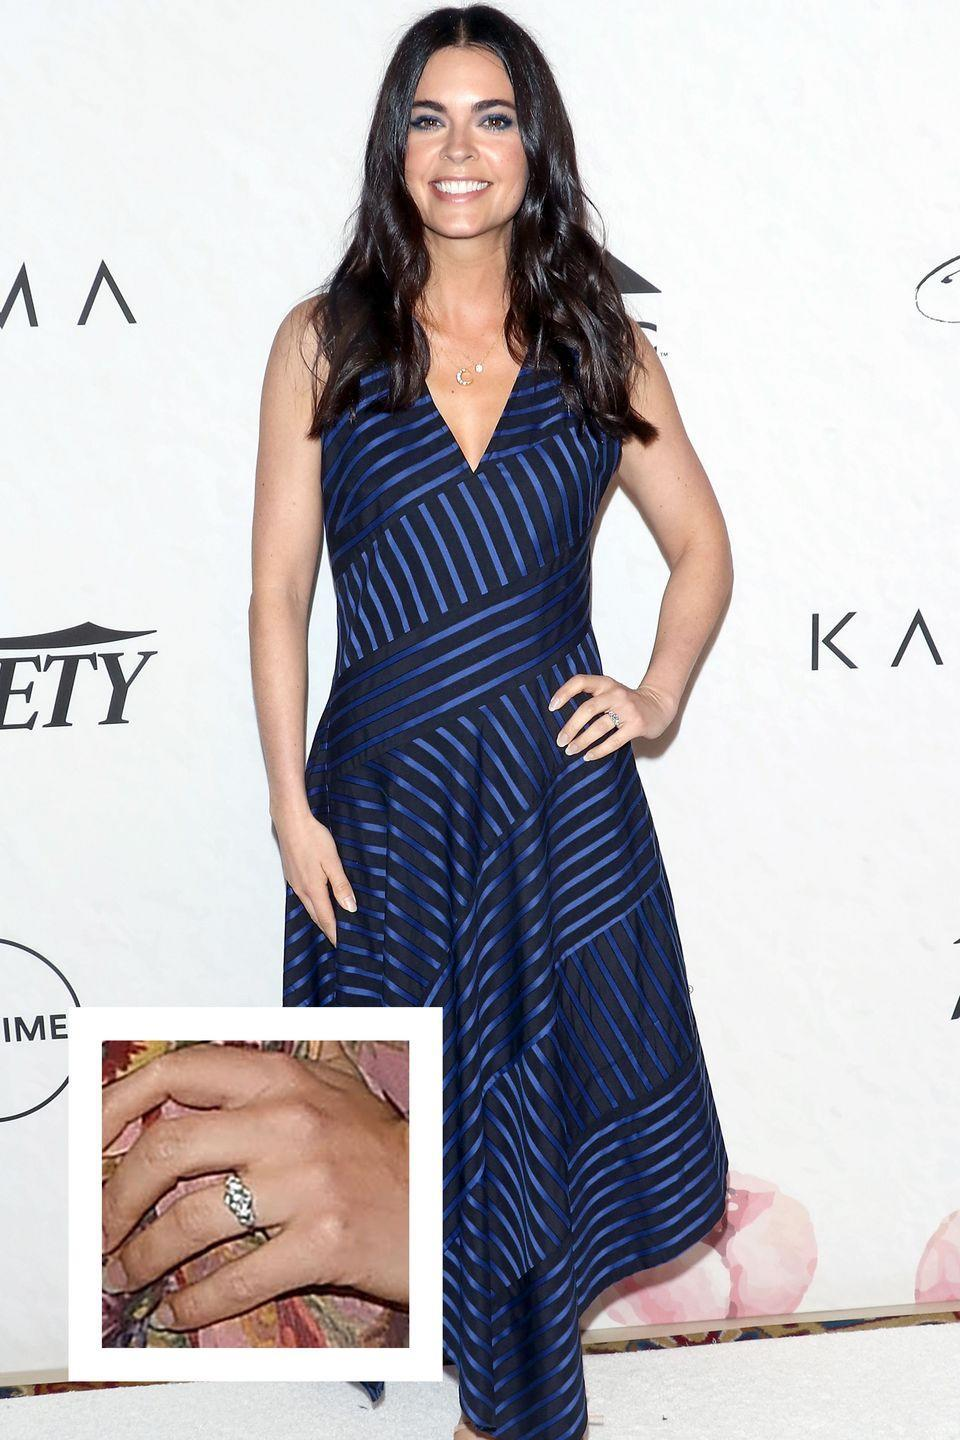 <p>The Food Network star got engaged to boyfriend Ryan Biegel in March 2018. Her dazzling diamond ring appears to be a round cut stone with diamonds on the side. </p>